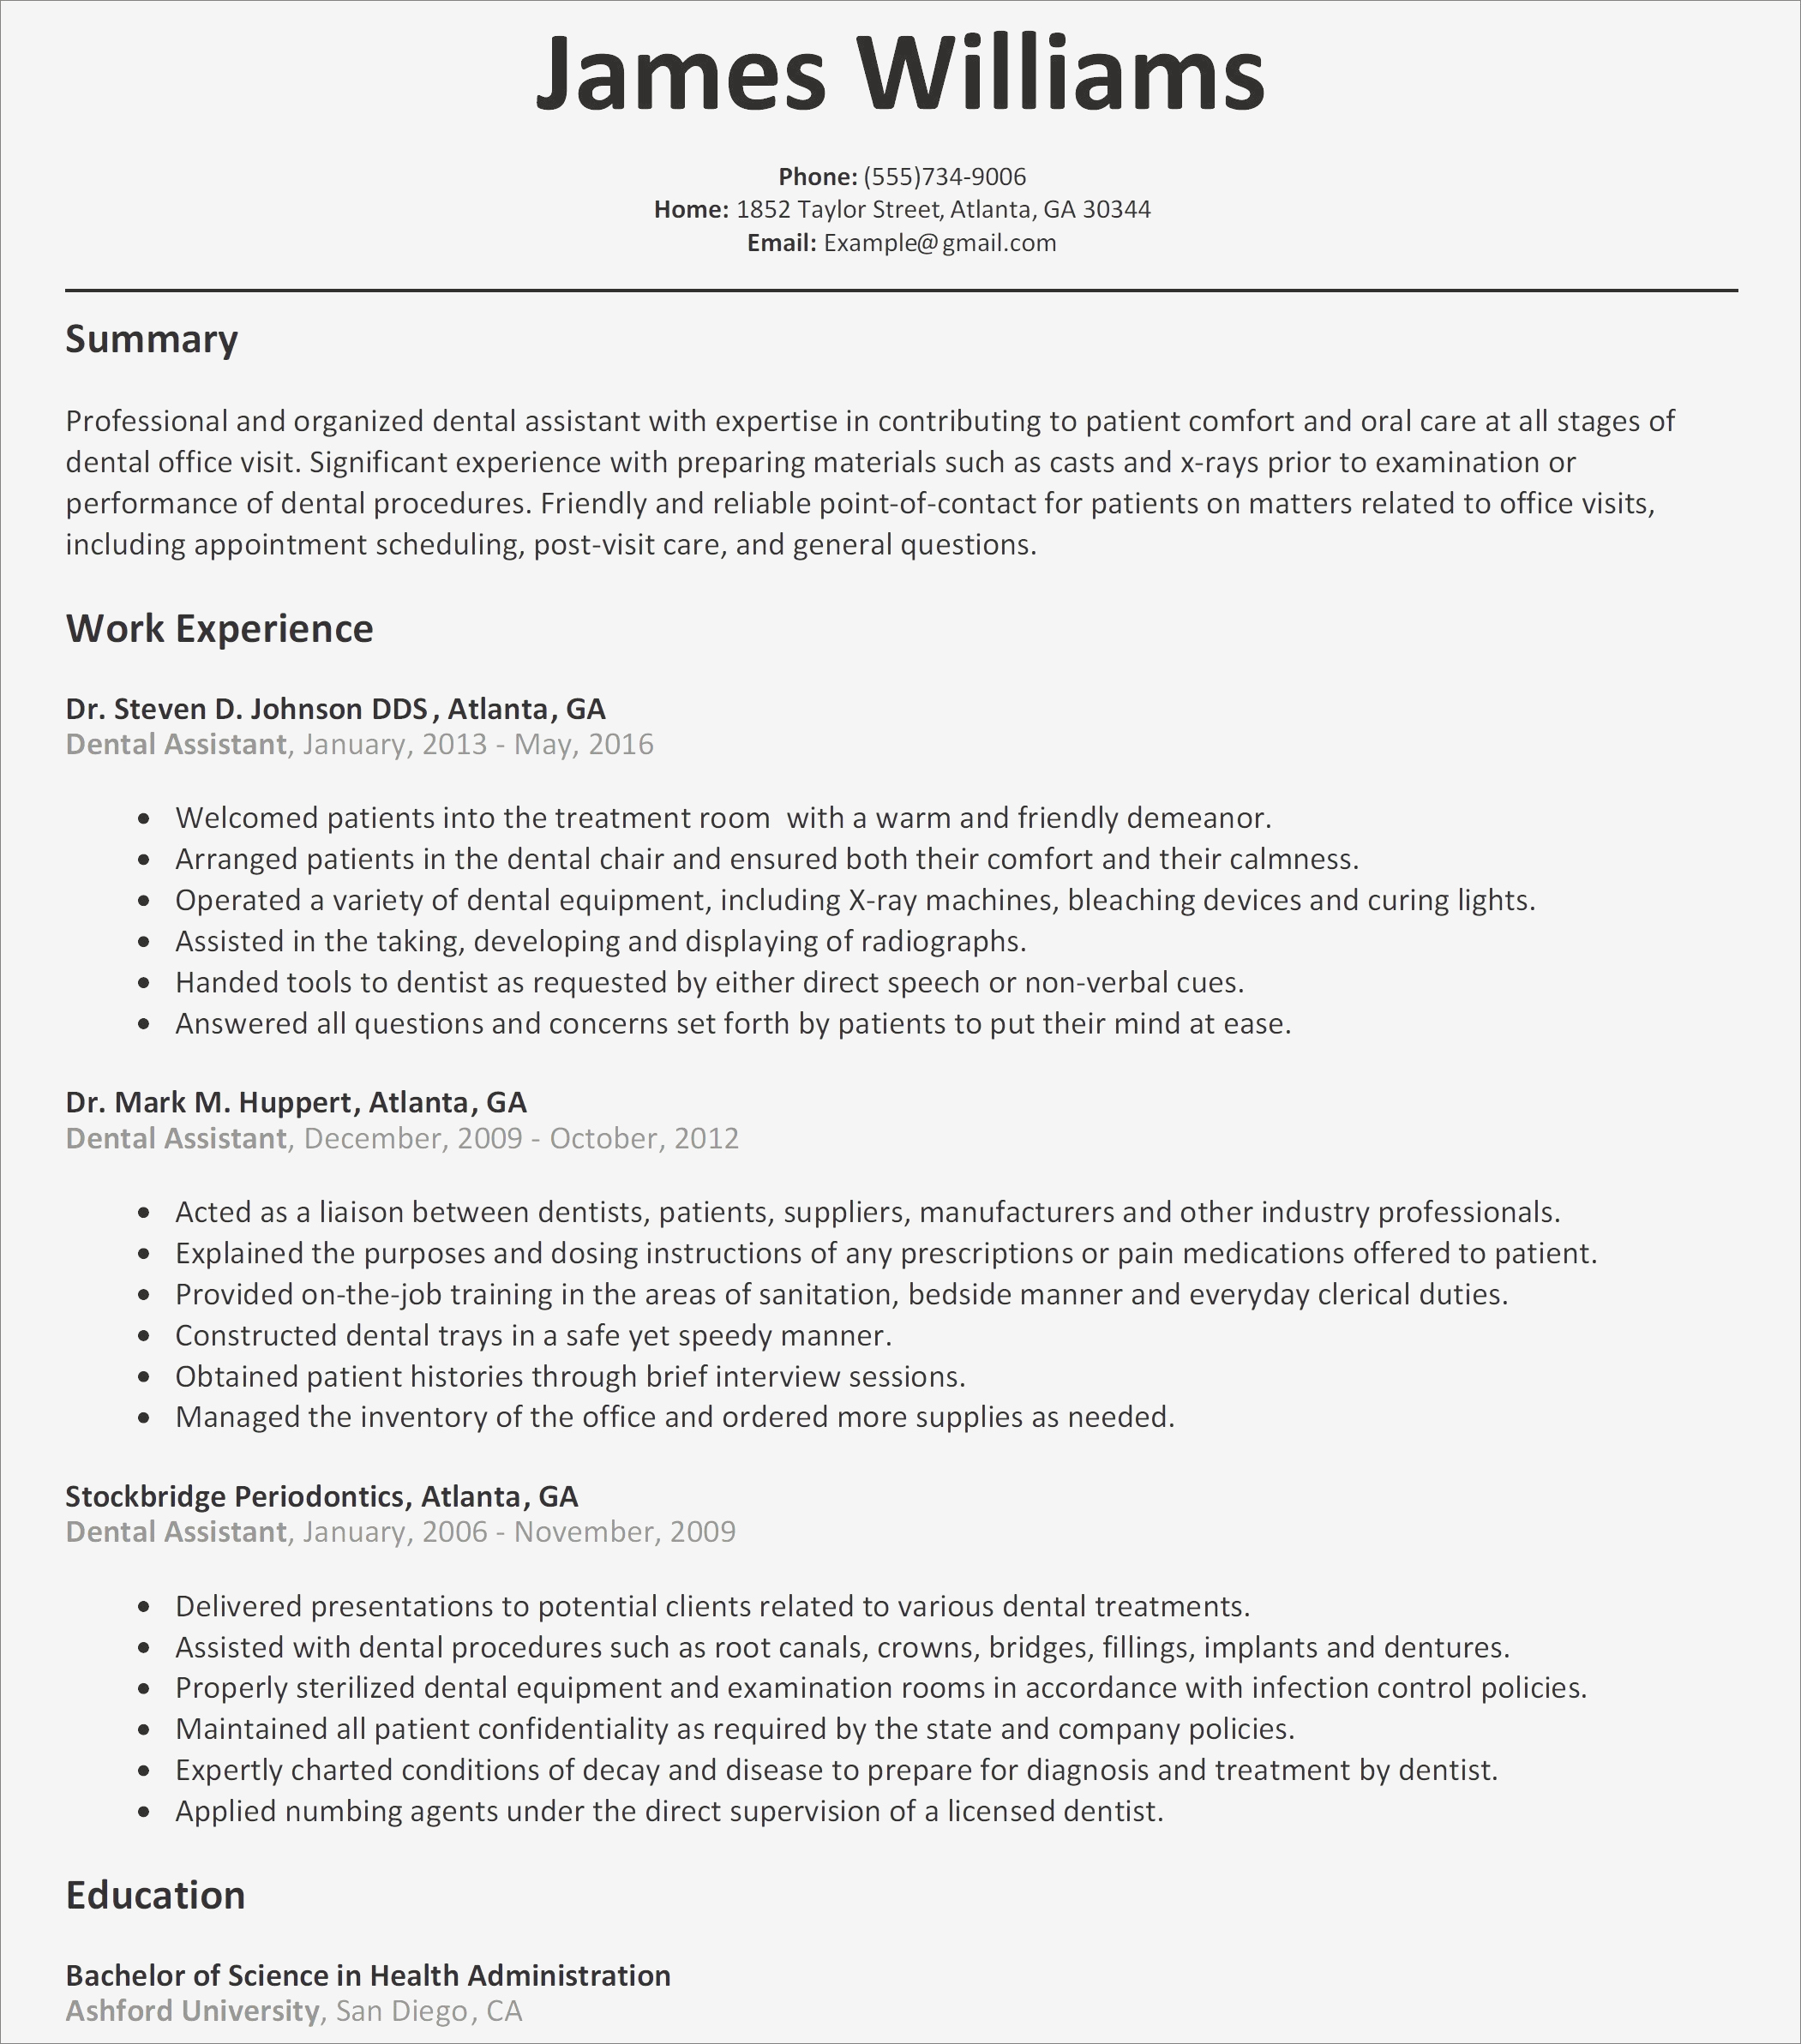 Dental assistant Resume Examples - Dental assisting Cover Letter